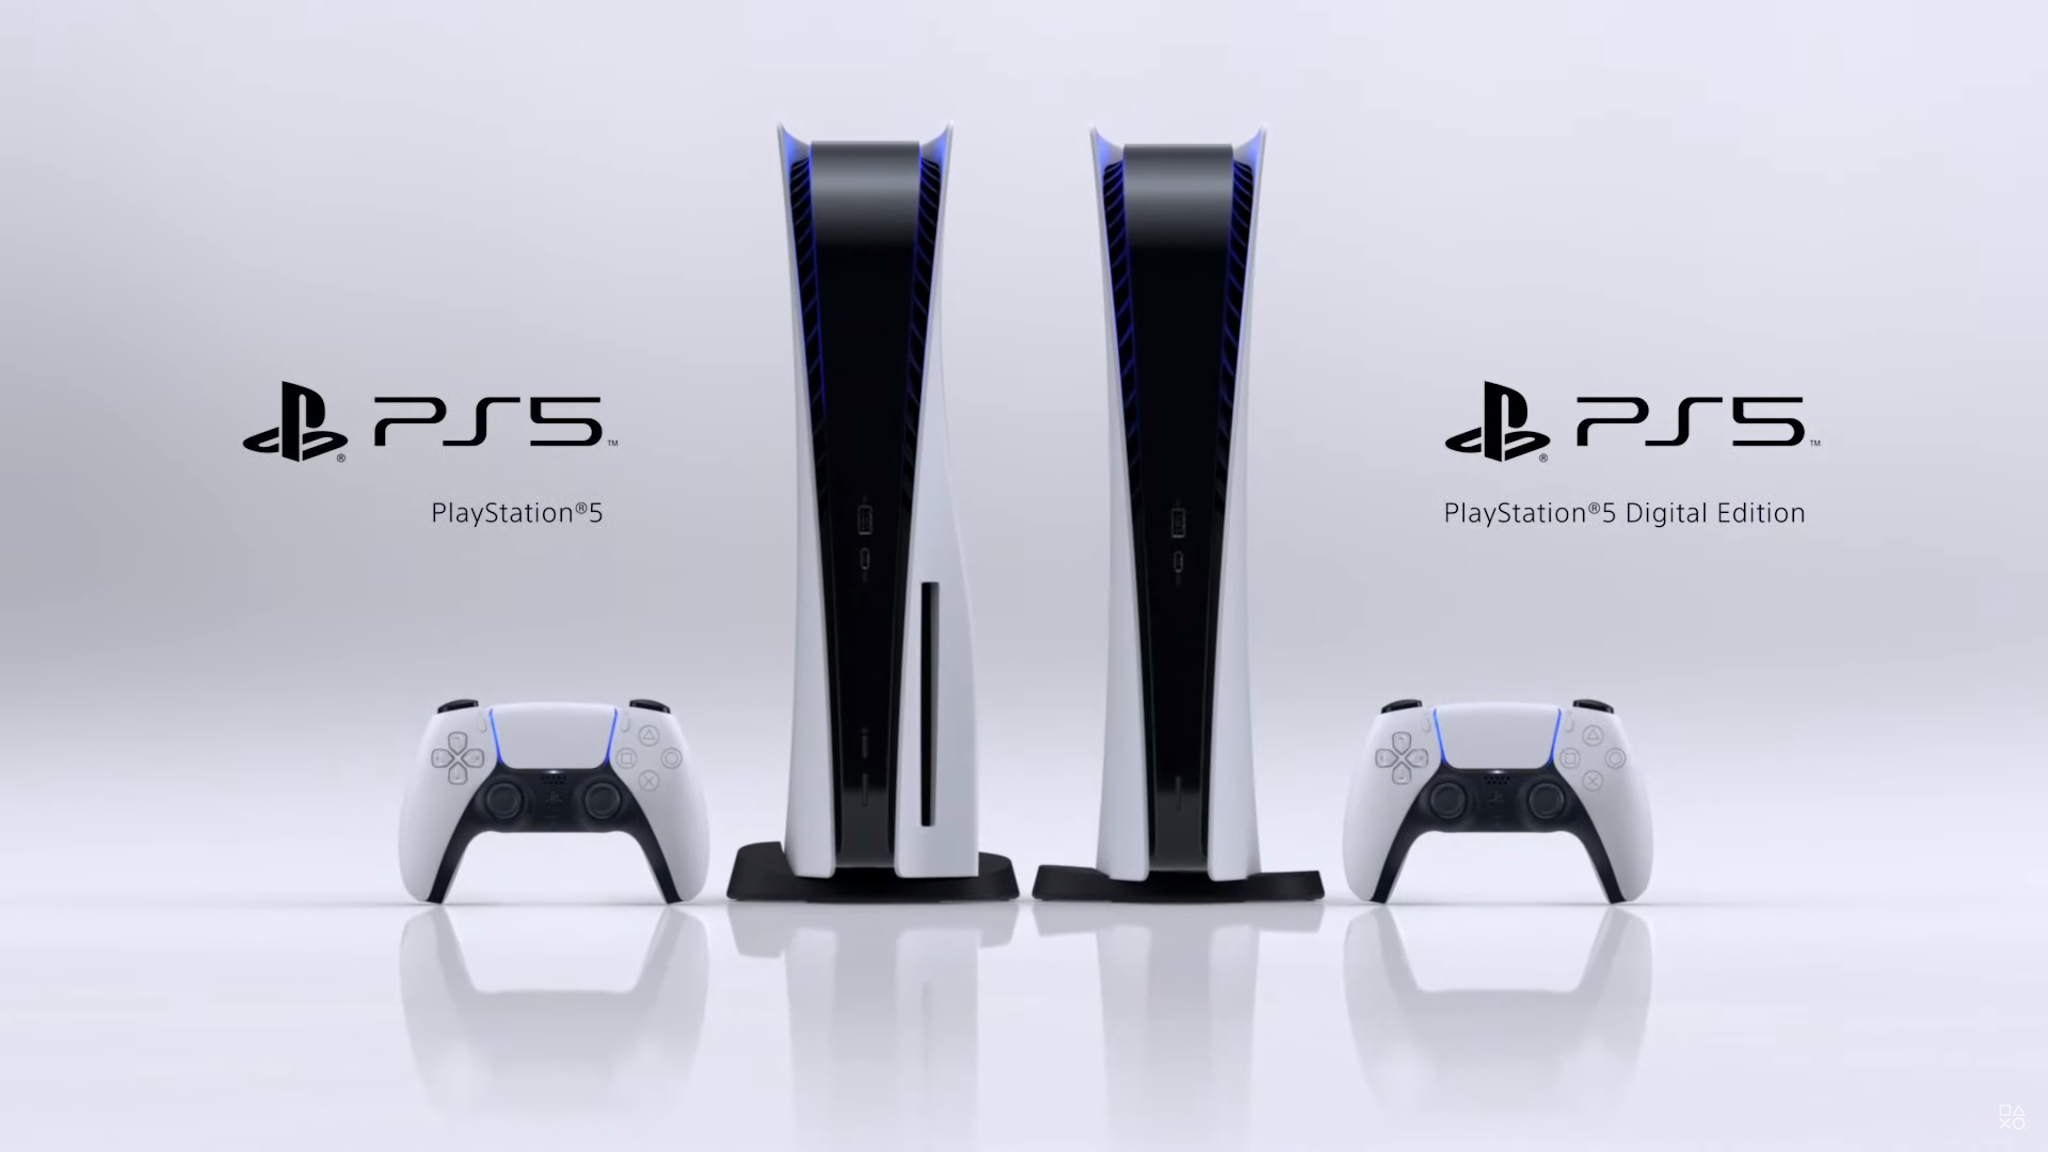 PlayStation 5 sold in its first hours